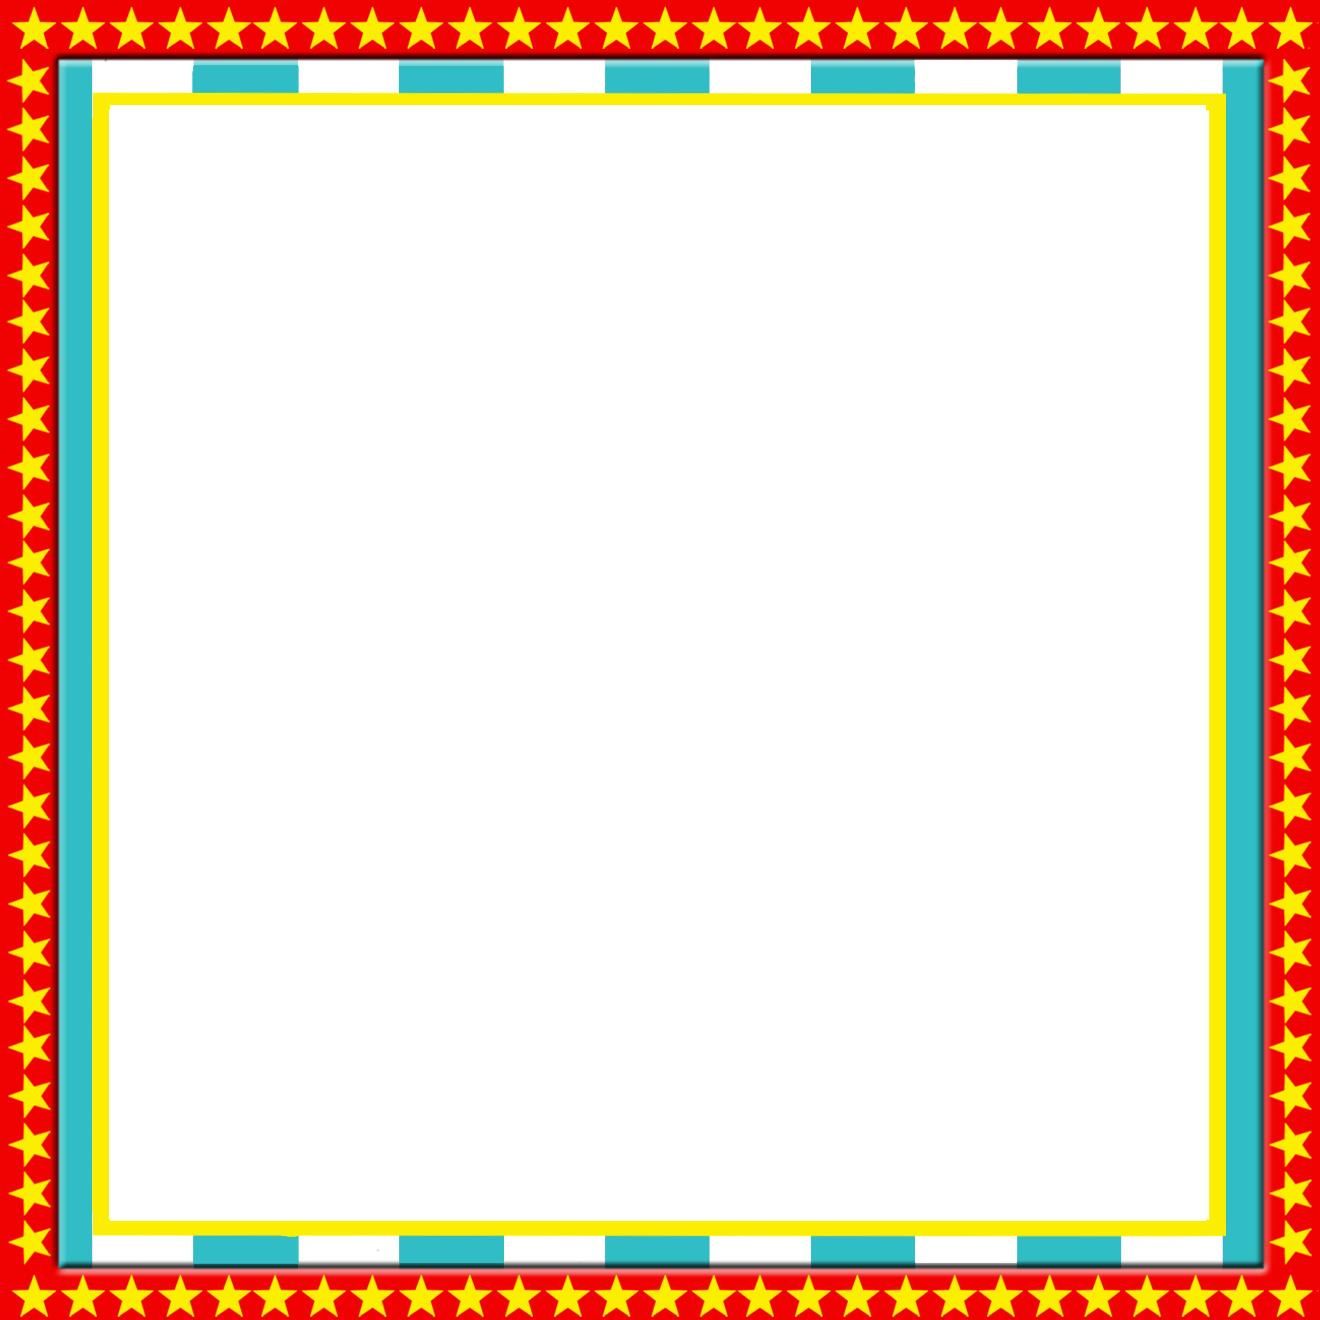 birthday party invitation borders ; 04d89ee9009bd510f32307912439d019